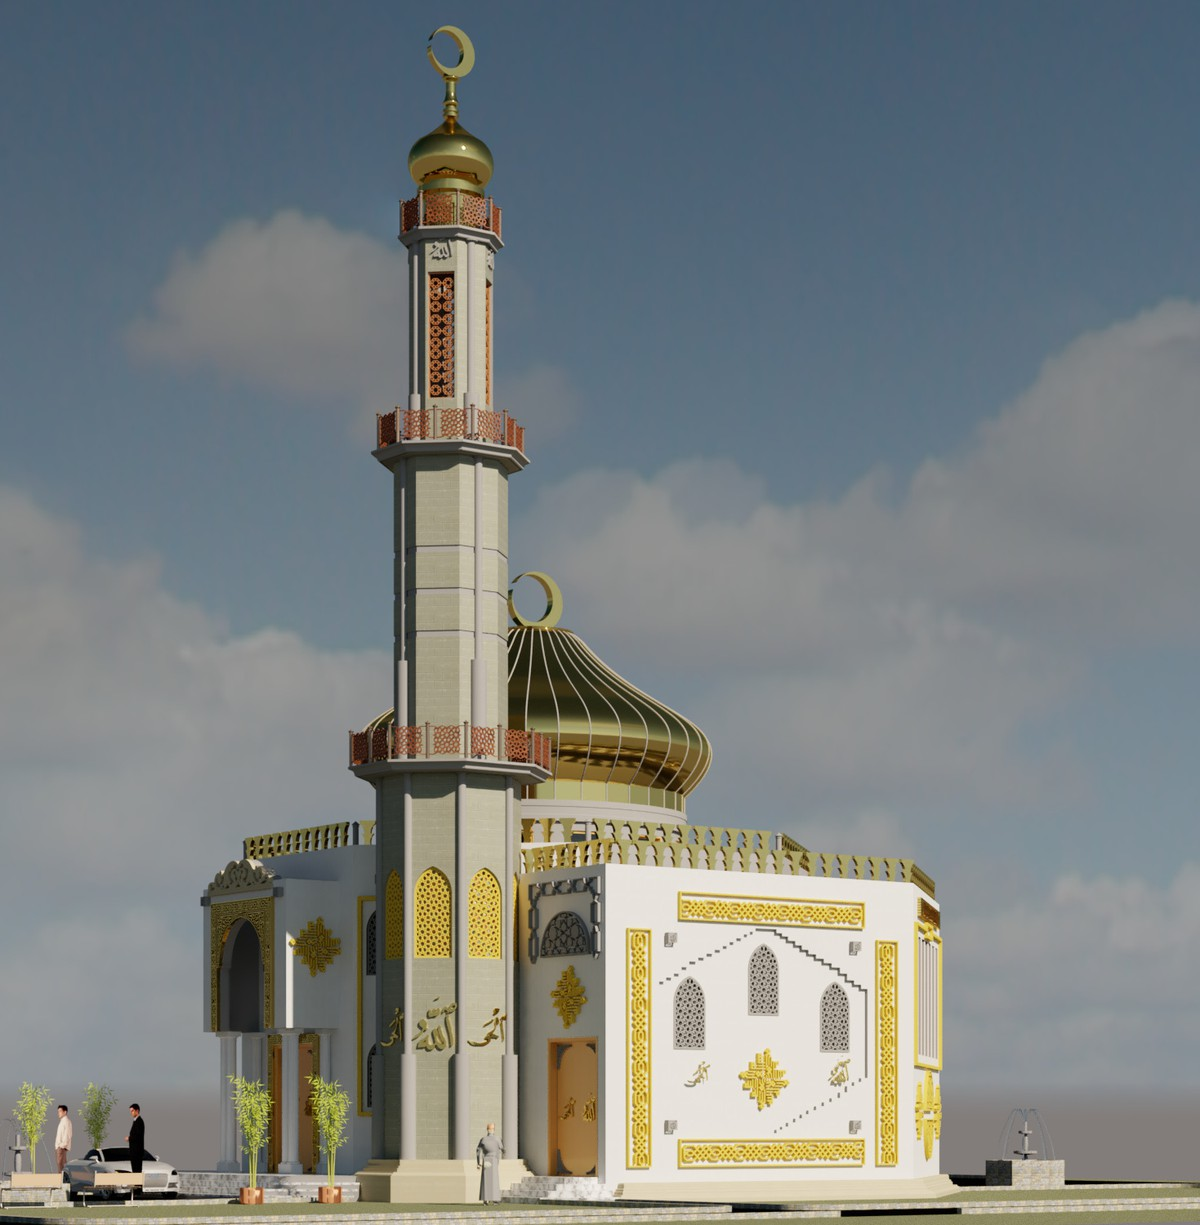 mosque_nw.rvt_2019-Sep-12_12-50-52AM-000_3D_View_1_jpg